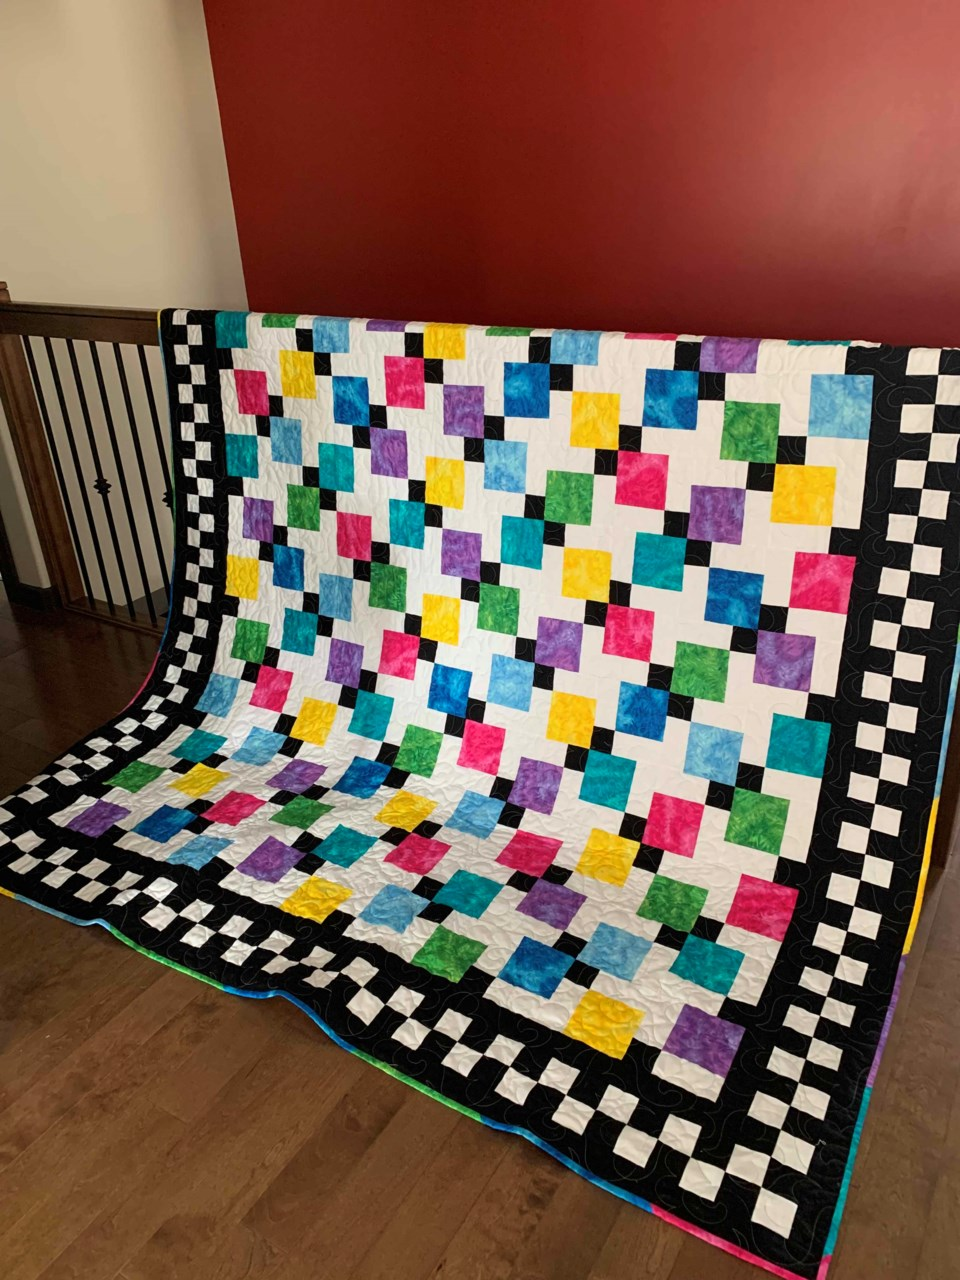 United Way Quilt pic